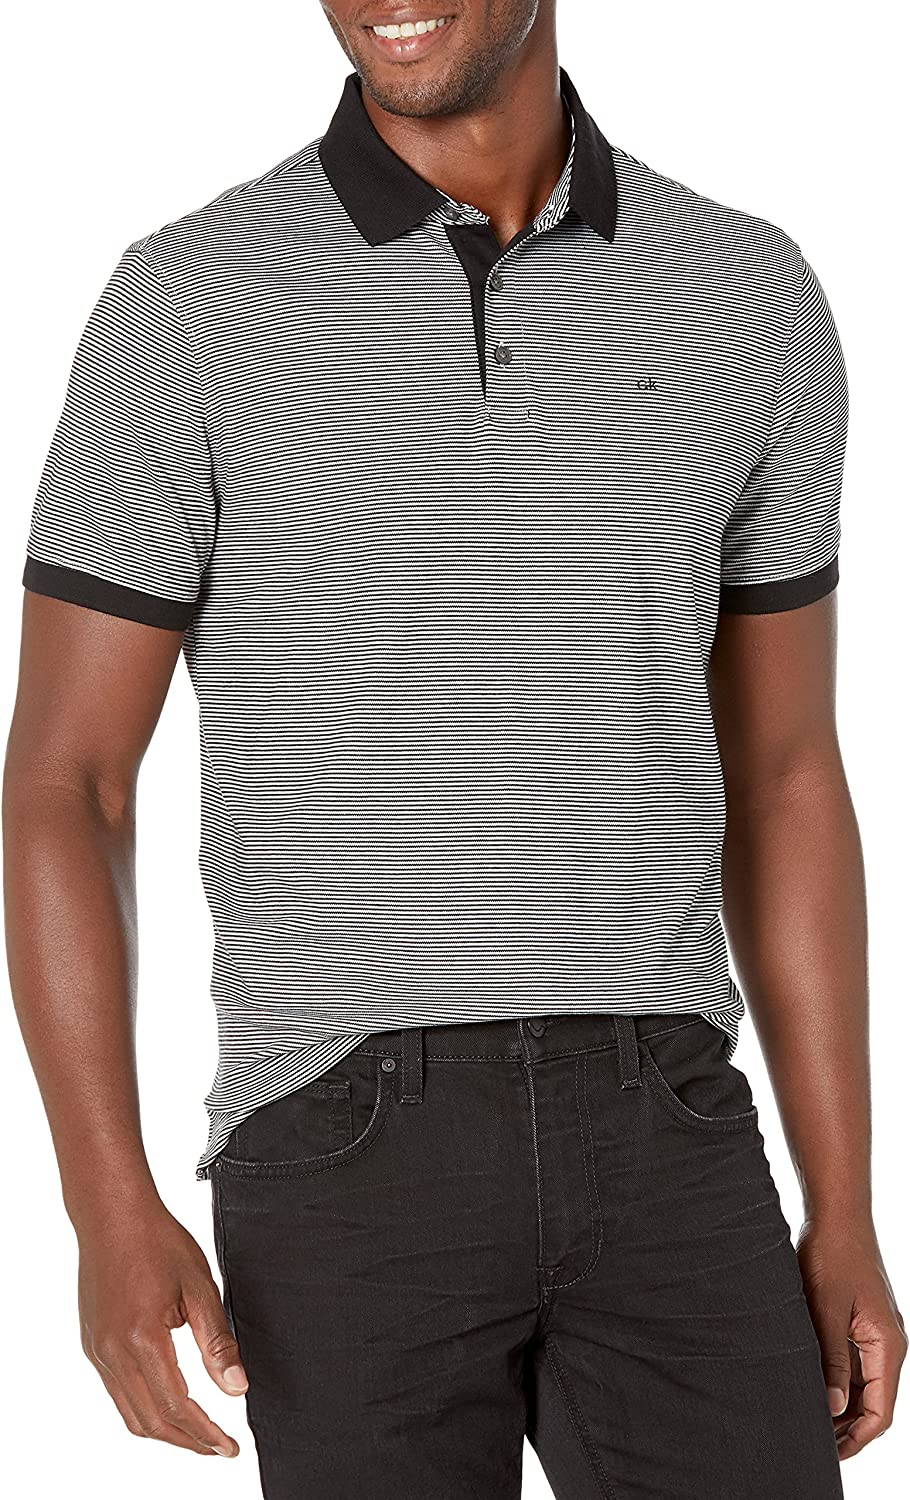 Popular brand Calvin Klein Men's Liquid Touch with Polo Protection Stripe Free Shipping Cheap Bargain Gift UV